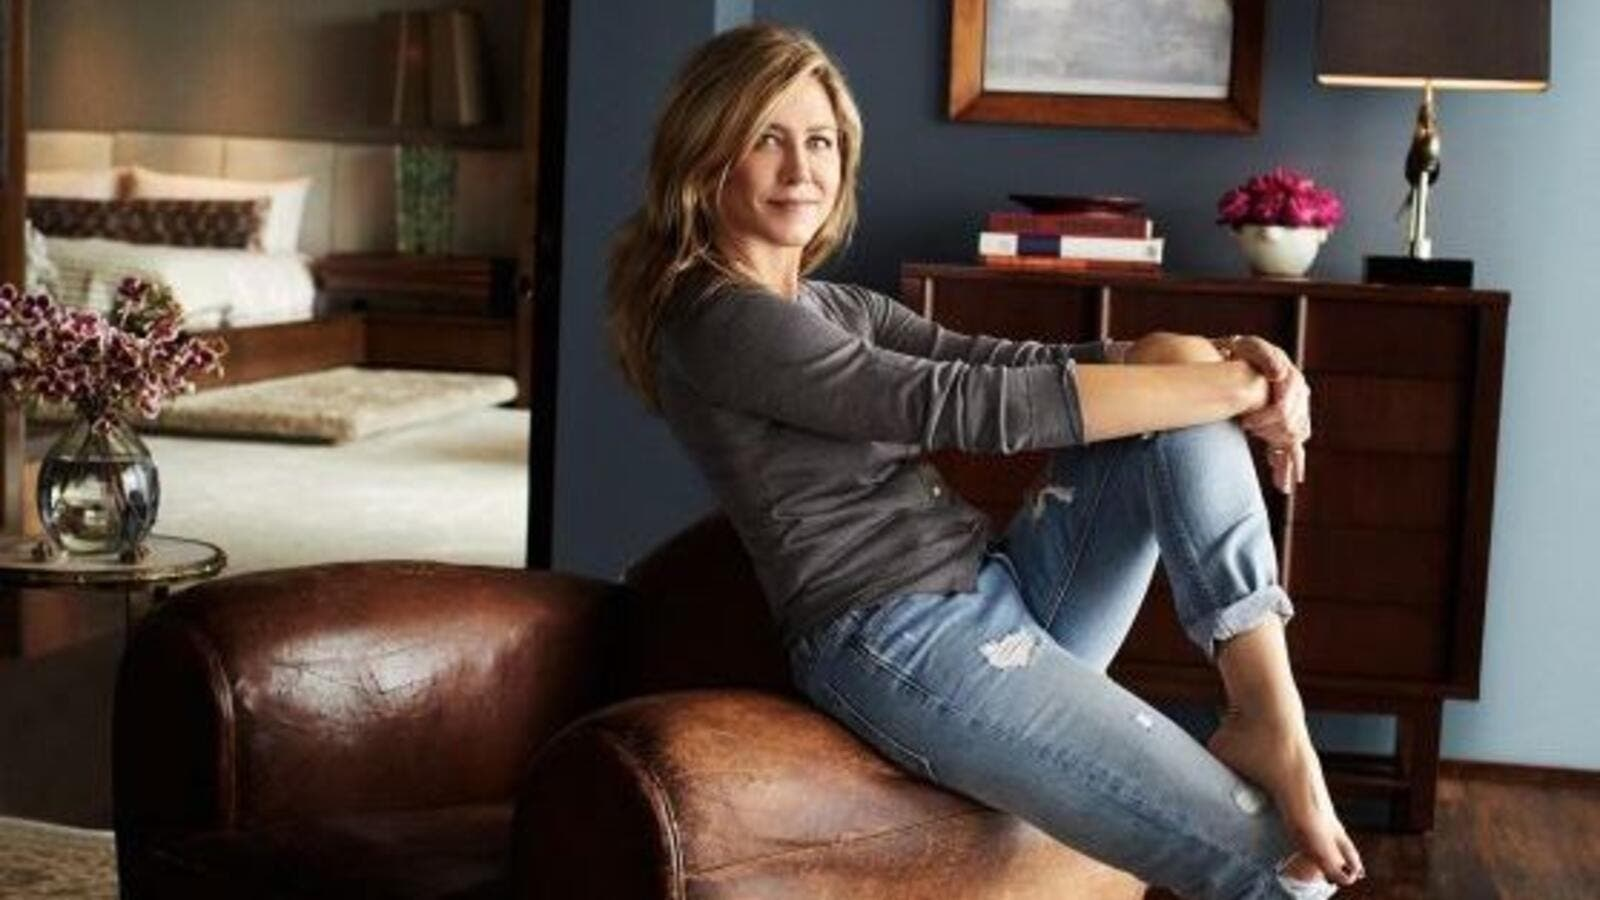 Jennifer Aniston 'Very Happy Being Single' after Split from